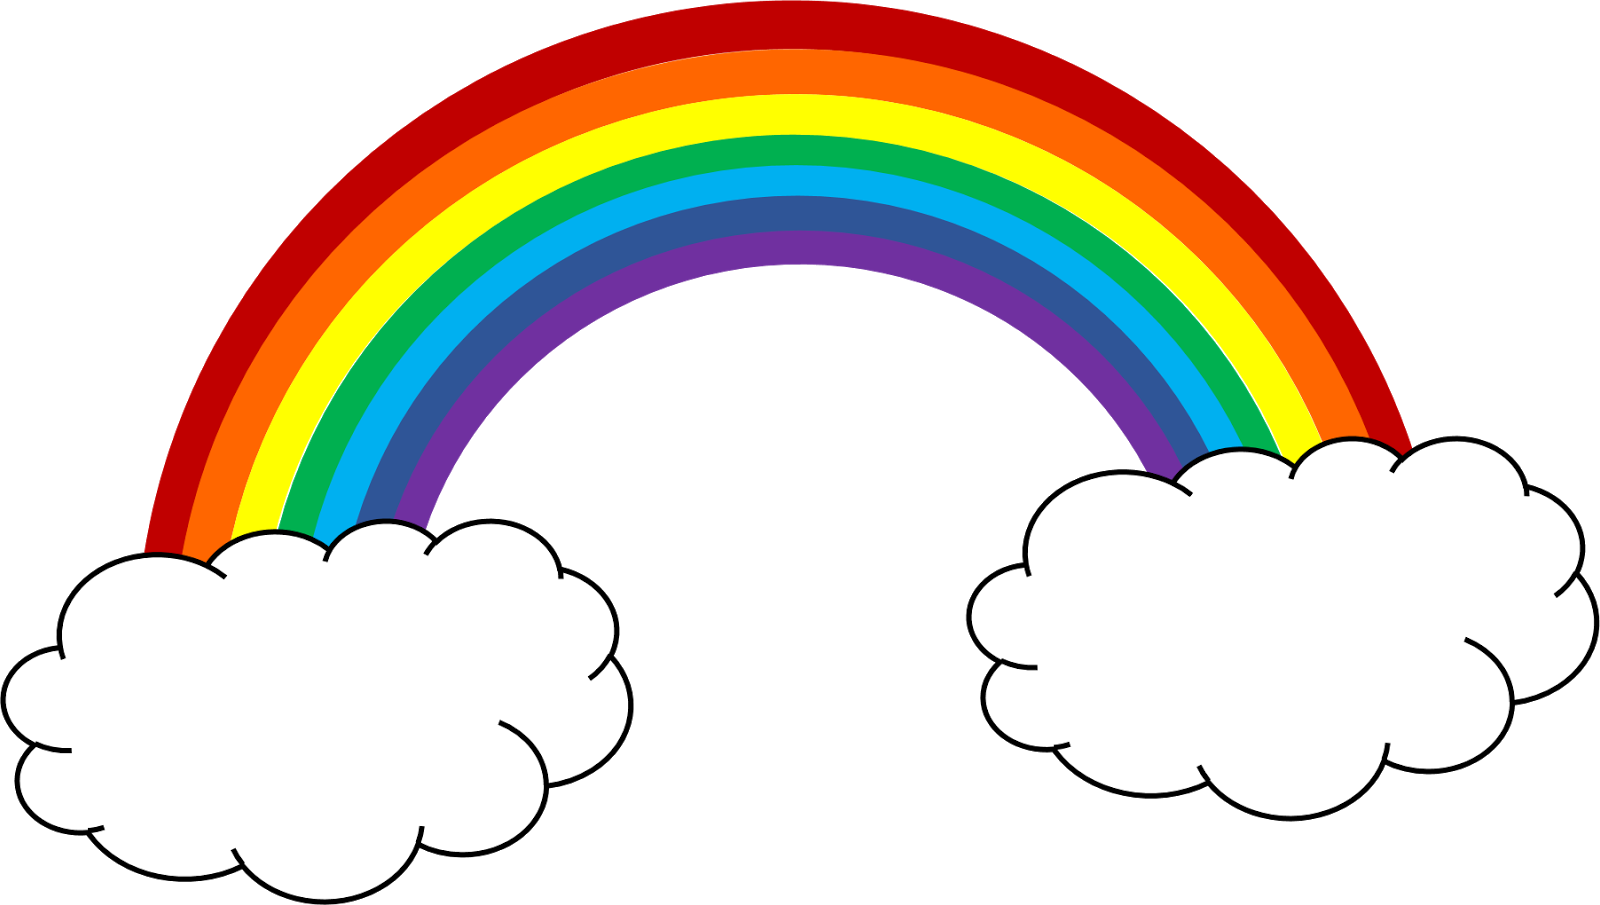 Free rainbow cliparts download.